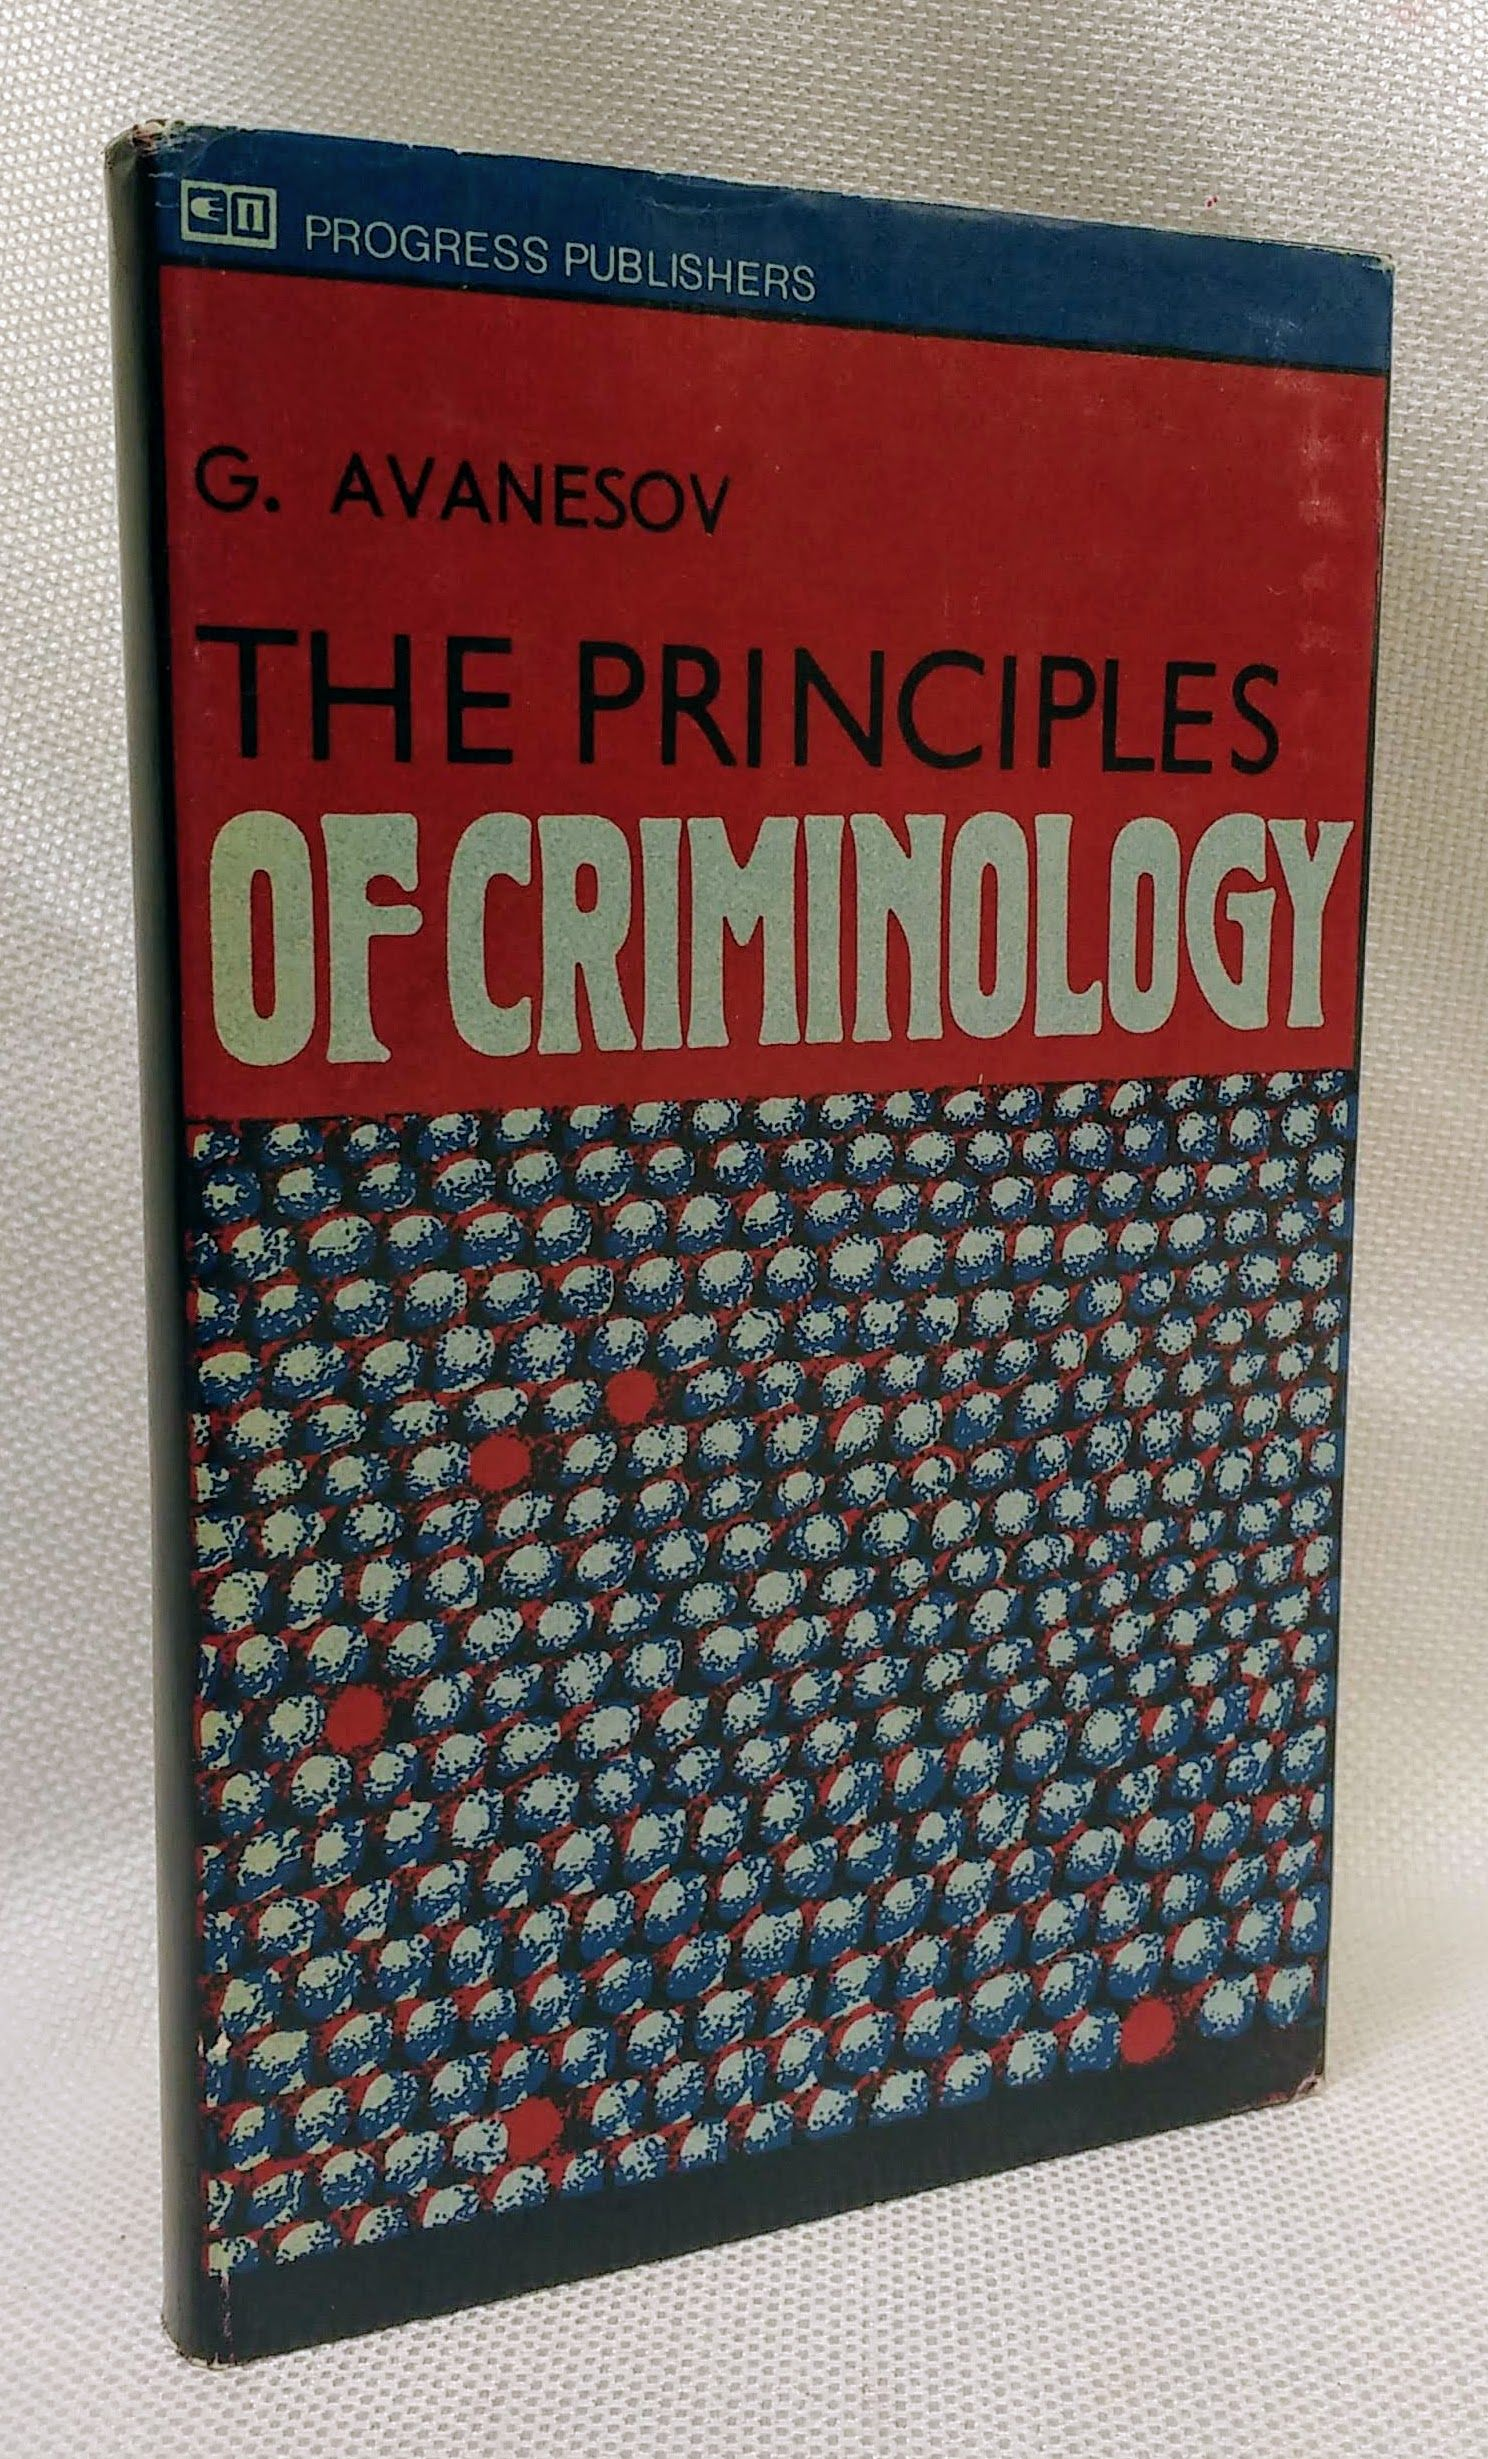 The principles of criminology / G. Avanesov, Avanesov, G. (Gennadii)